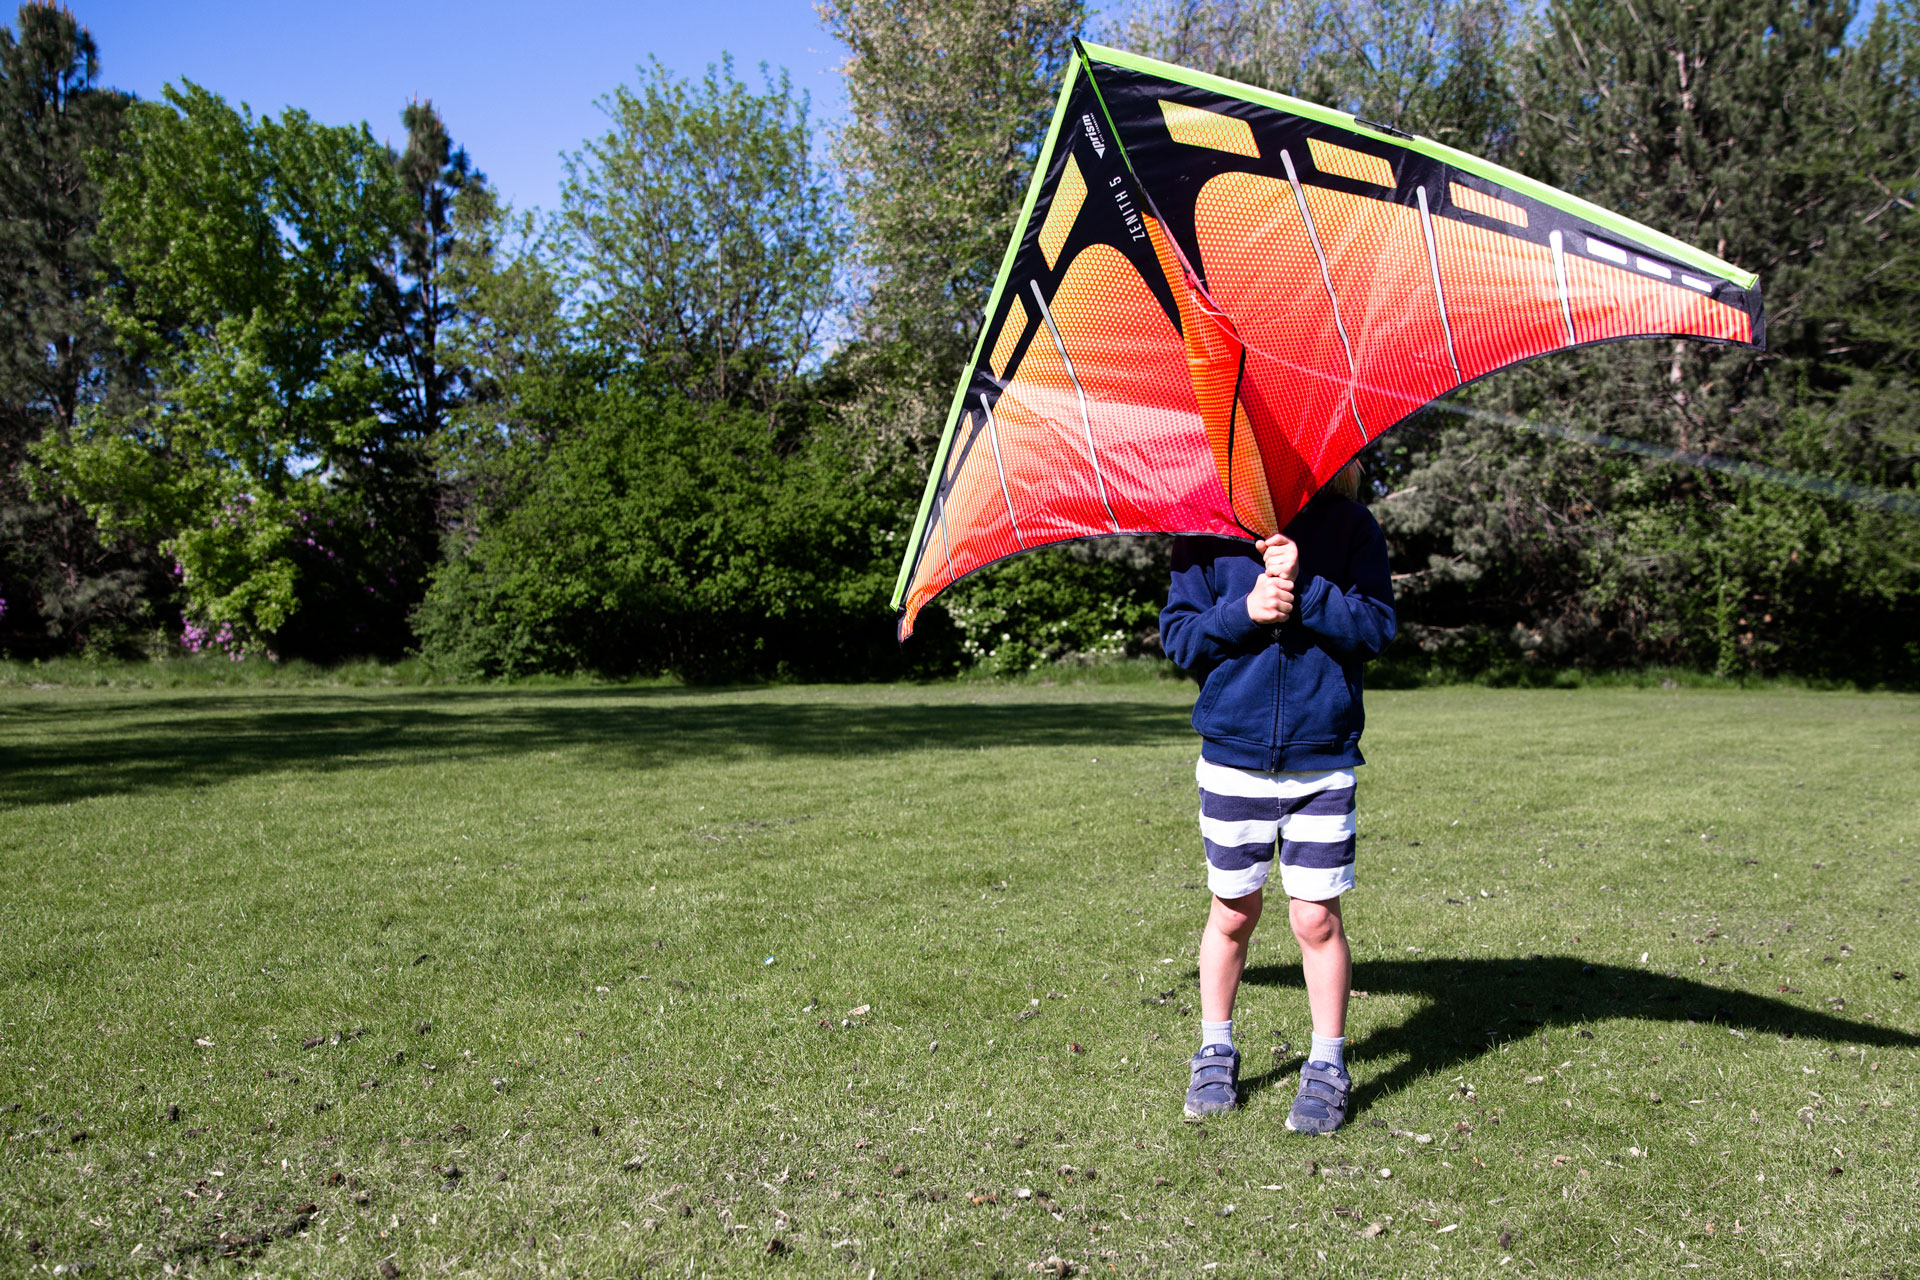 Little boy in the park holding a very large kite in front of his face blocking it